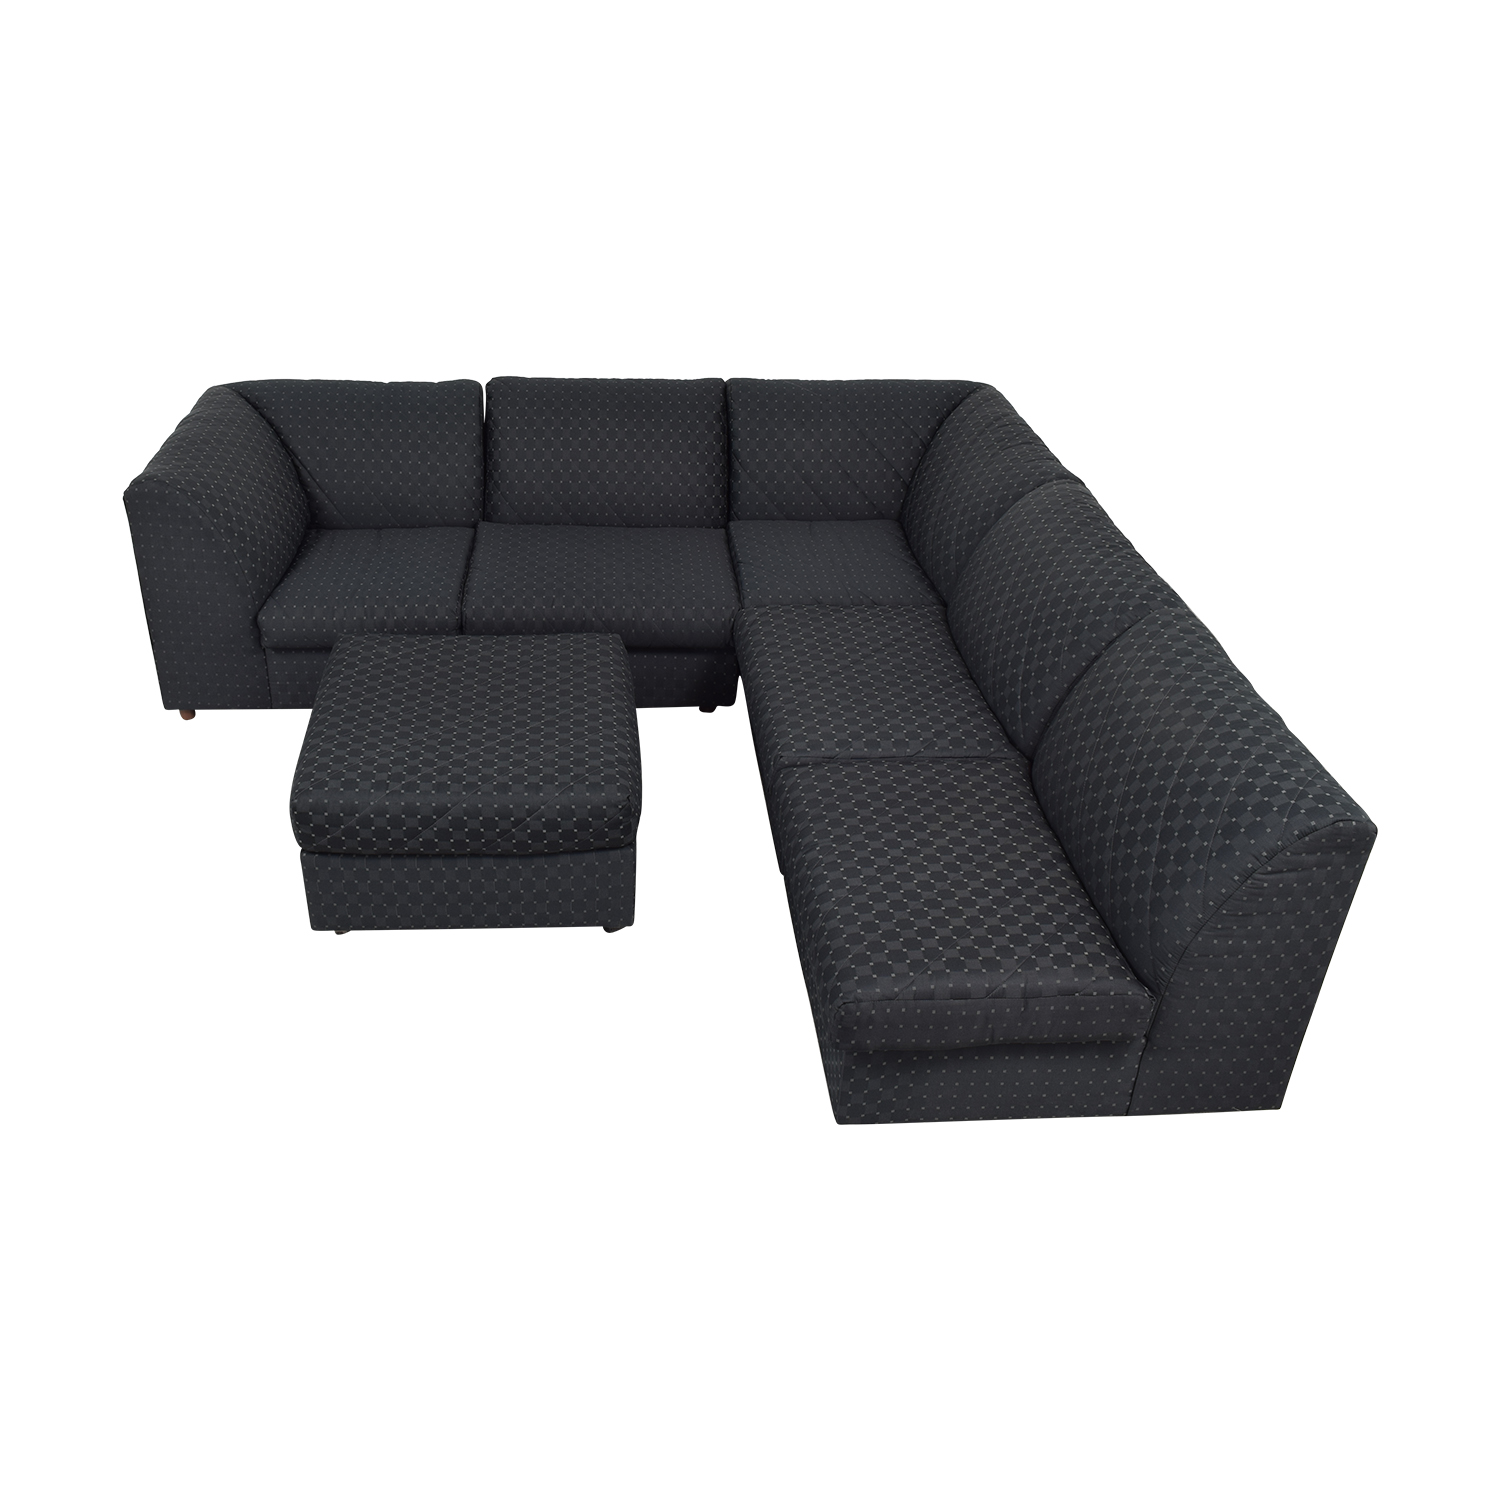 Broyhill Furniture Broyhill Furniture Corner Sectional with Ottoman discount